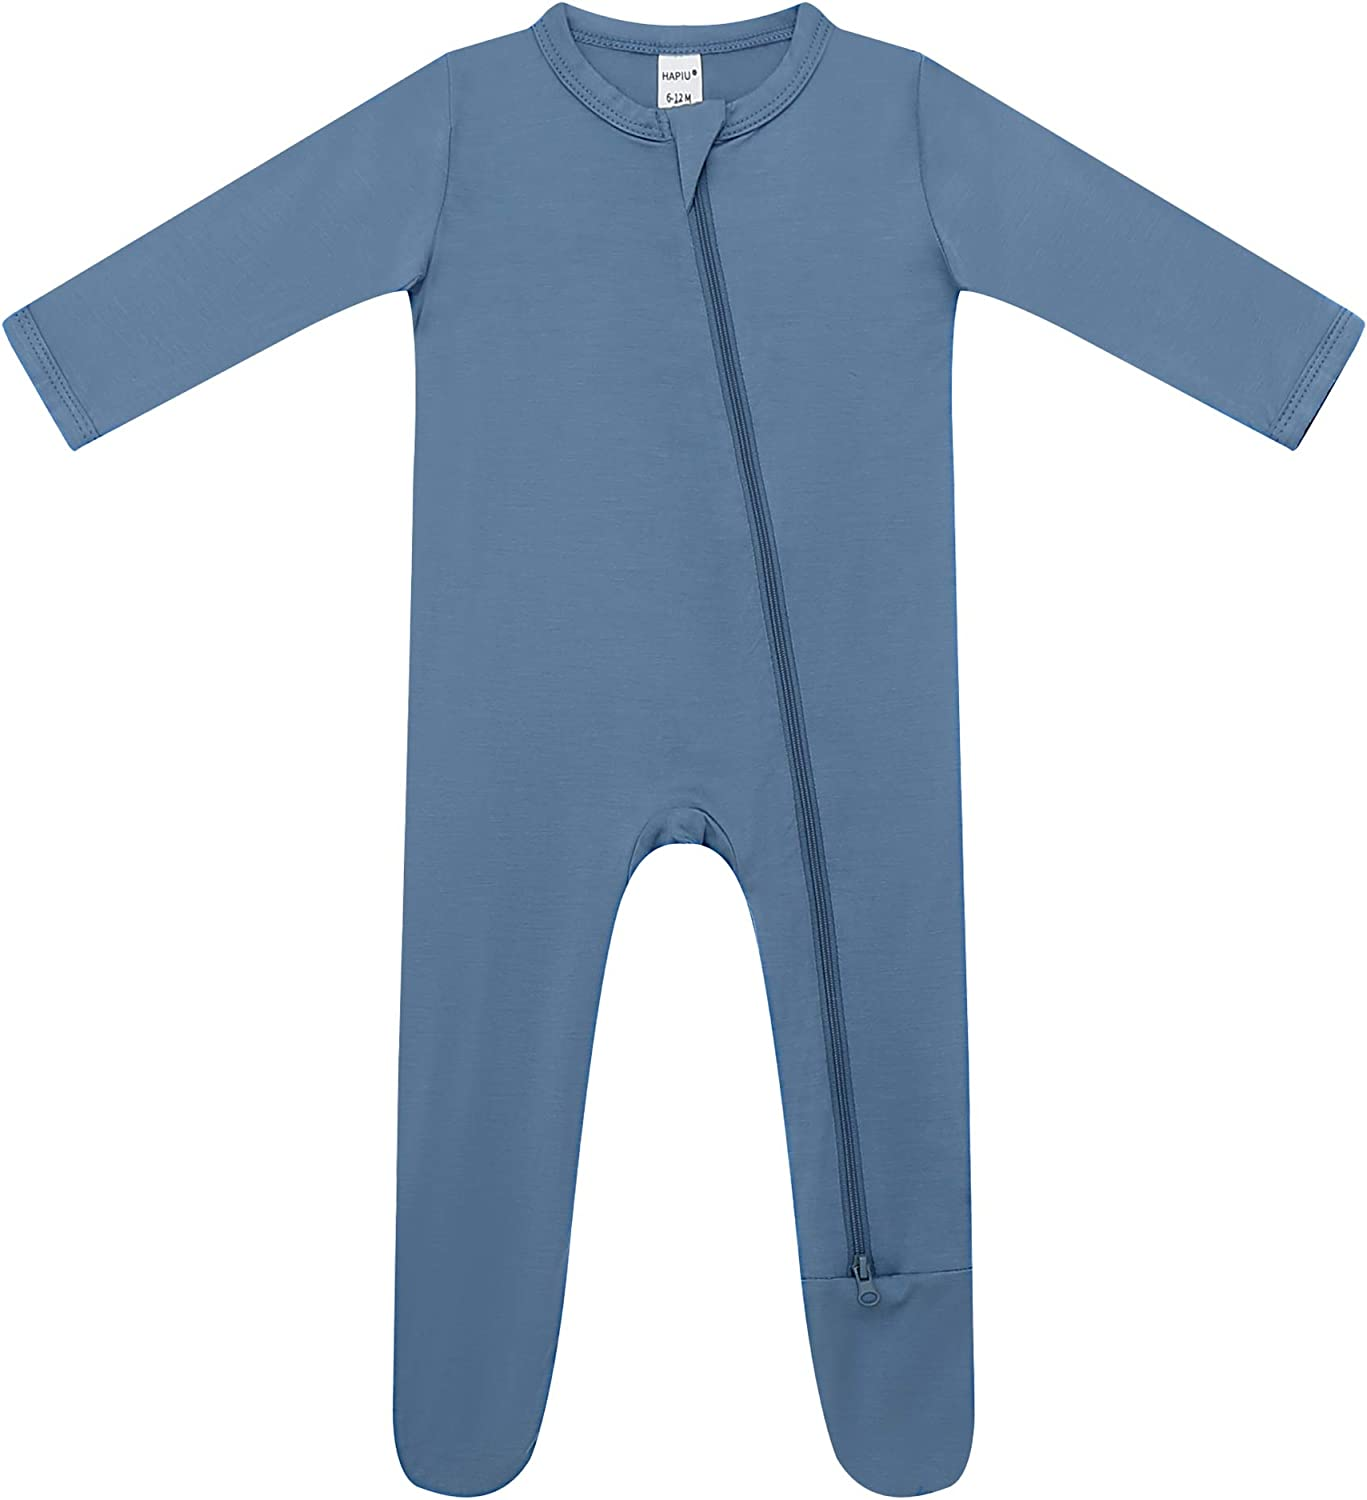 Vincent Summer Baby Boys Girls Zipper Short Sleeve Pajama Sleeper Cotton Romper Jumpsuit